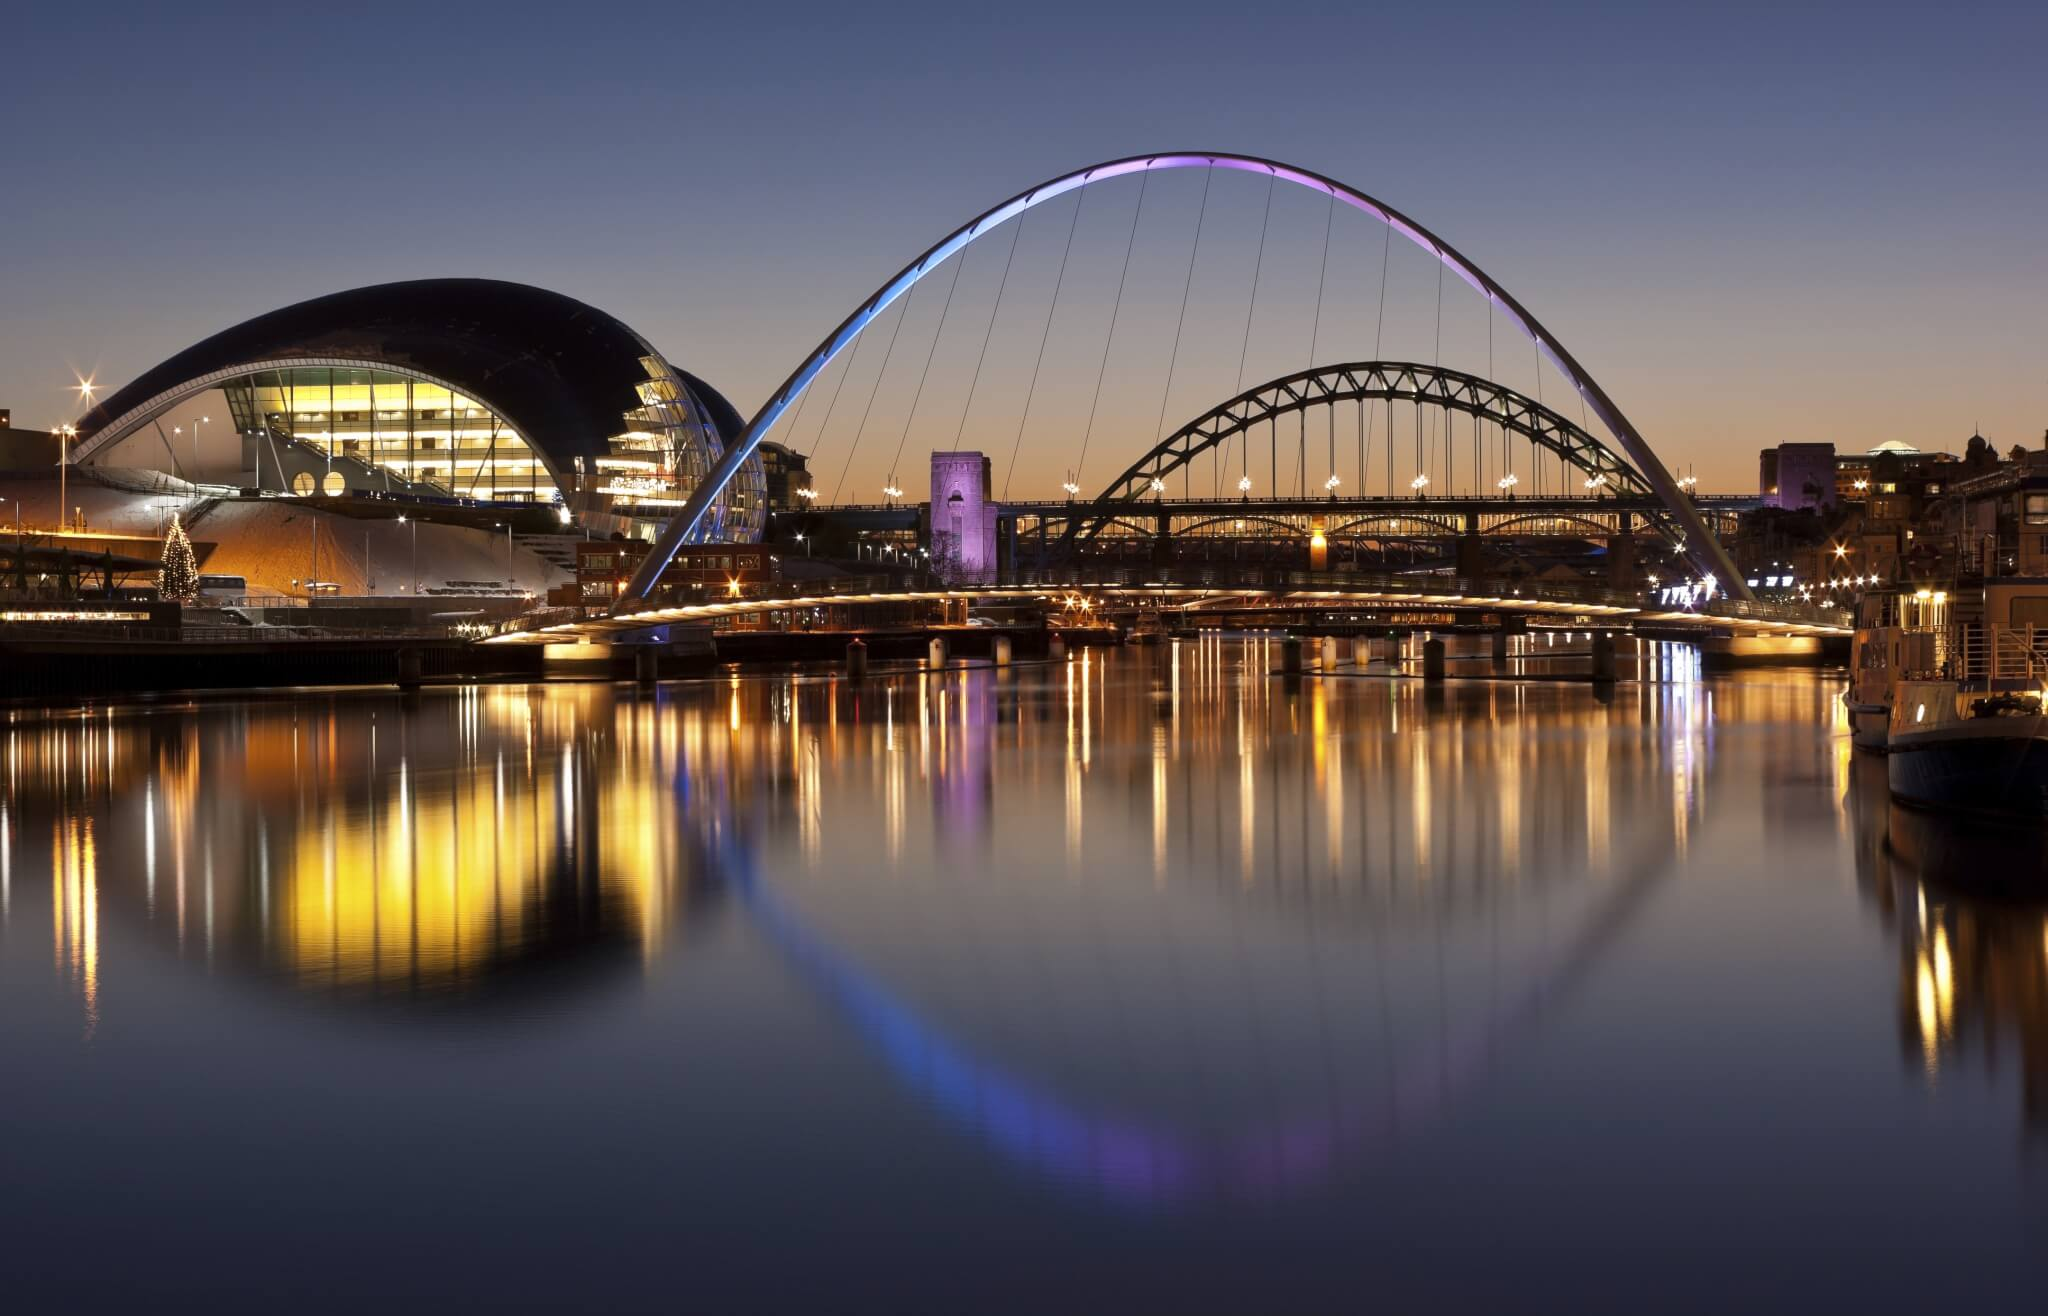 Gateshead-Tyne-and-Millennium-bridges-at-sundown-000015105178_Large.jpg.jpeg